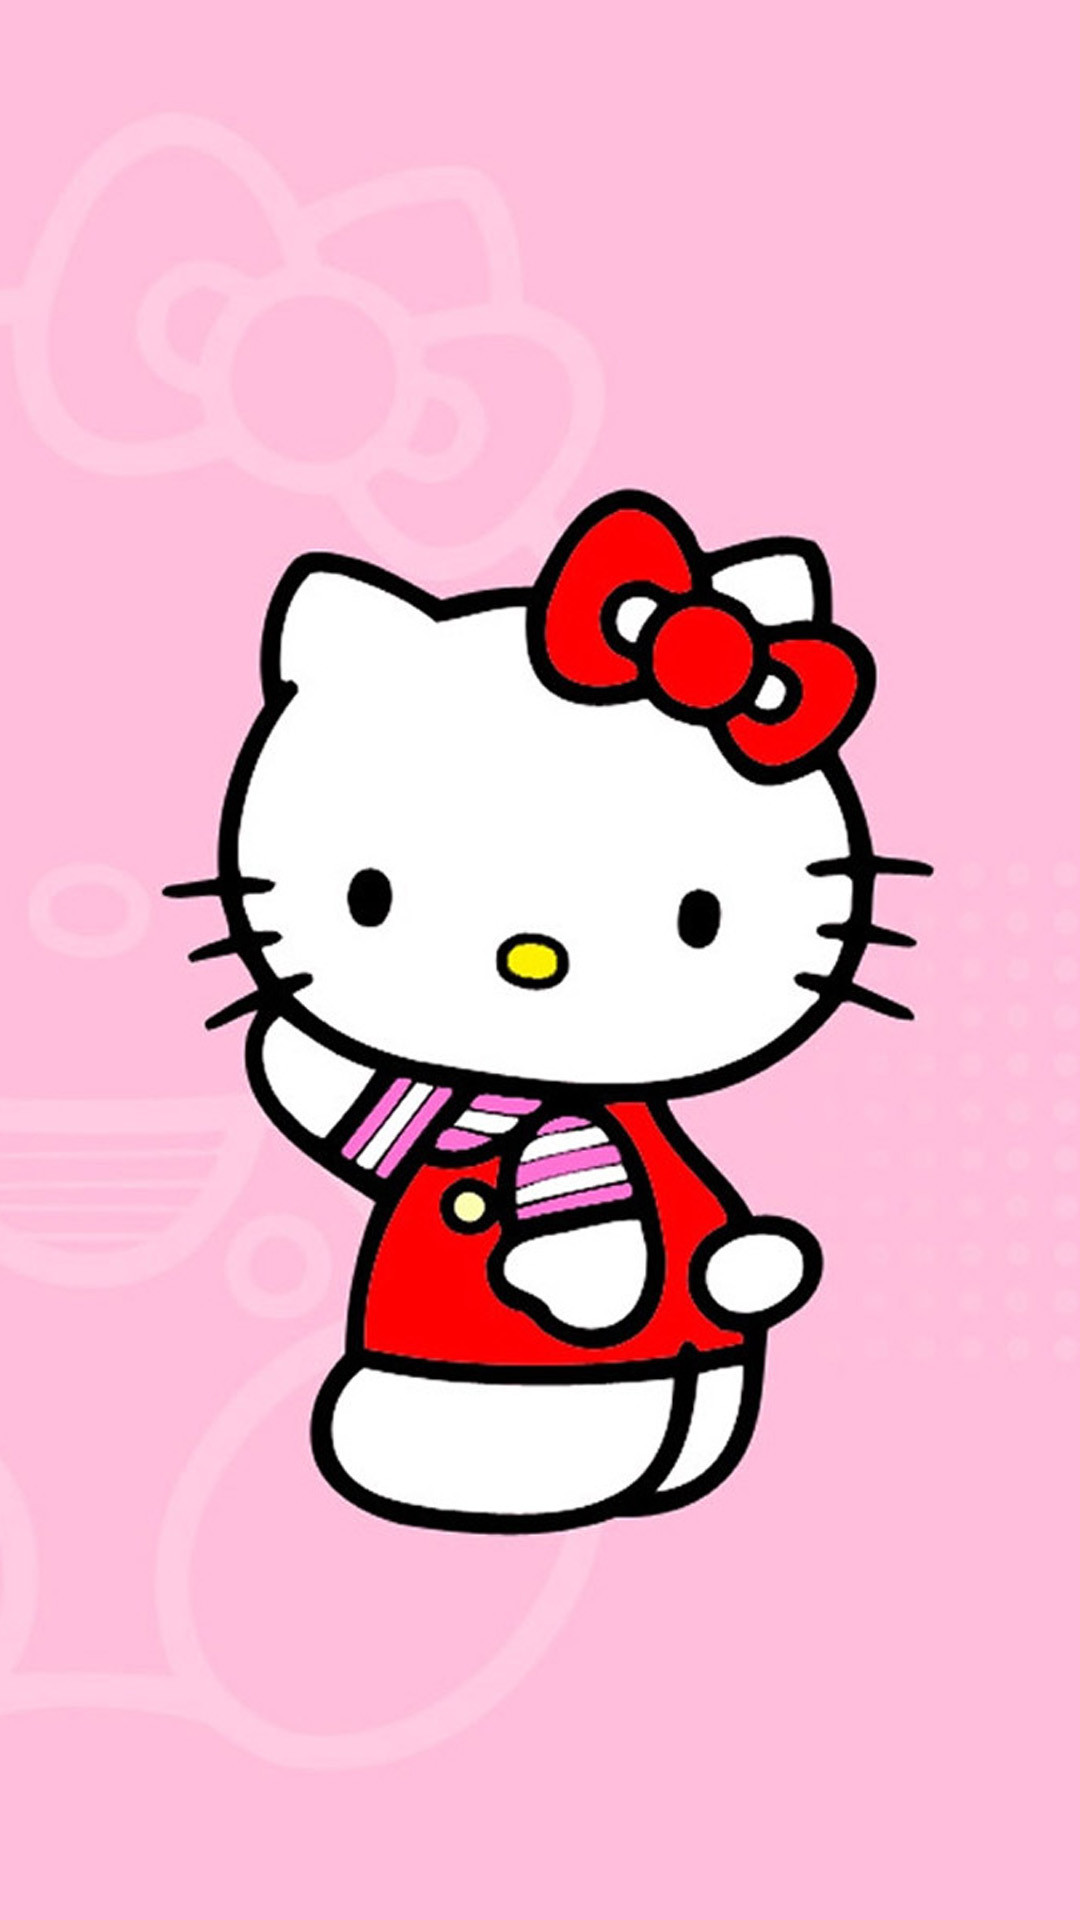 1080x1920 Hello Kitty Wallpaper iPhone 6 Plus Wallpapers HD